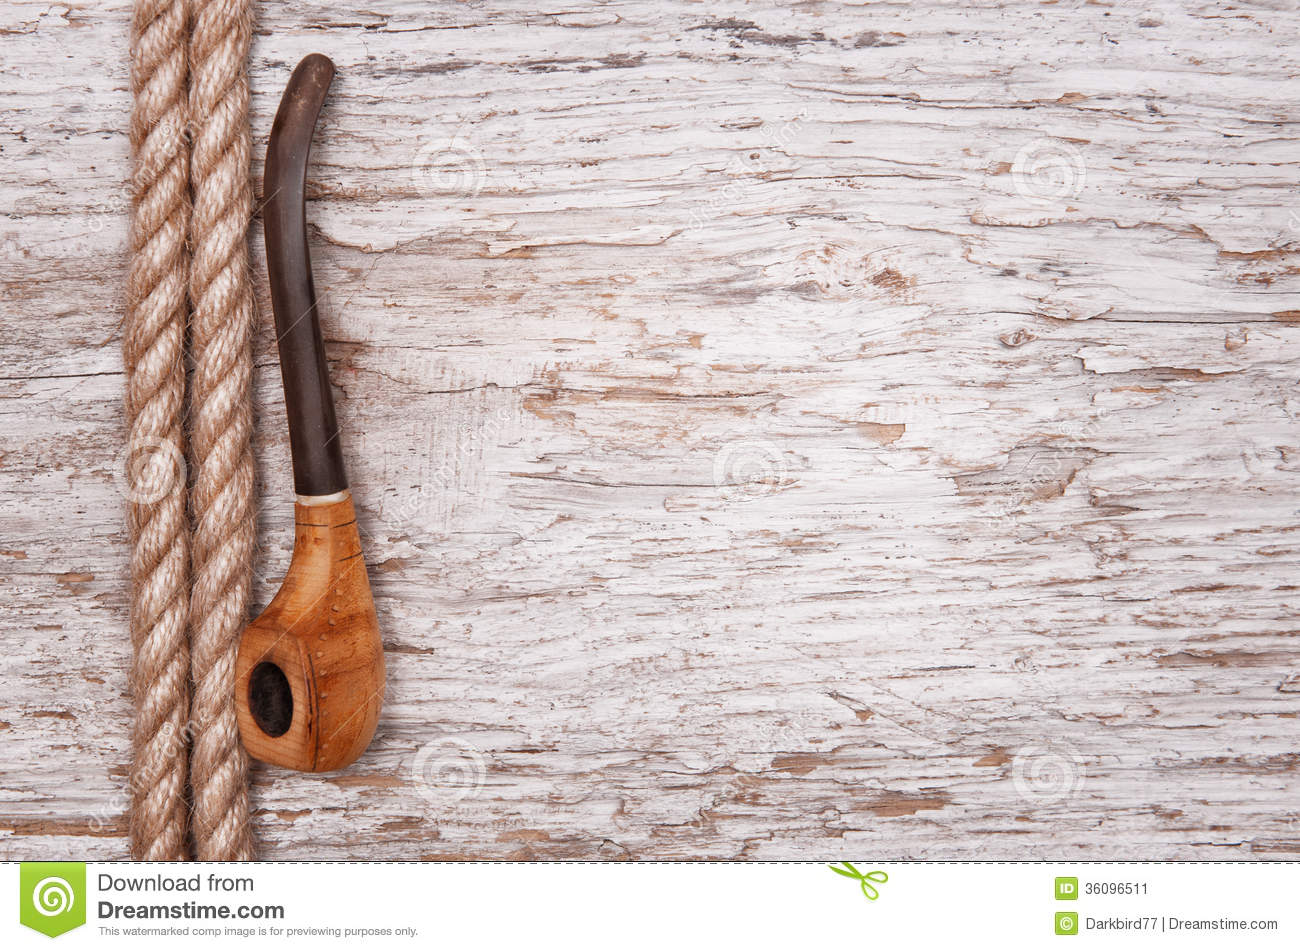 Rope and tobacco pipe